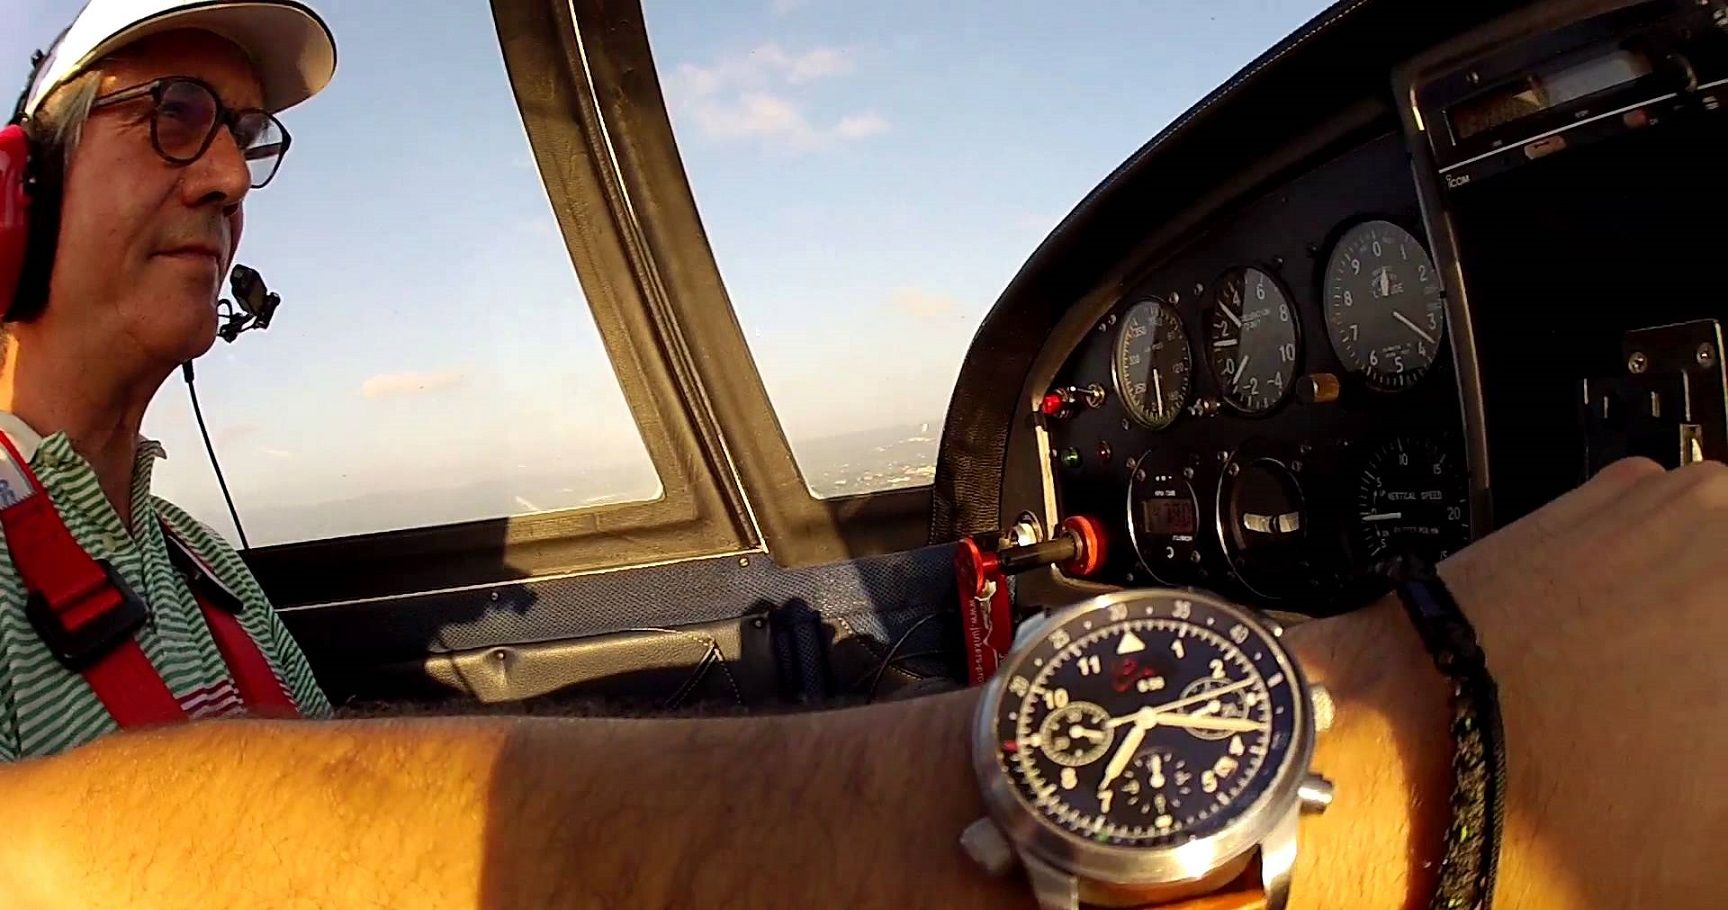 You Won't Believe How This Man Combines His Love of Airplanes and Watches